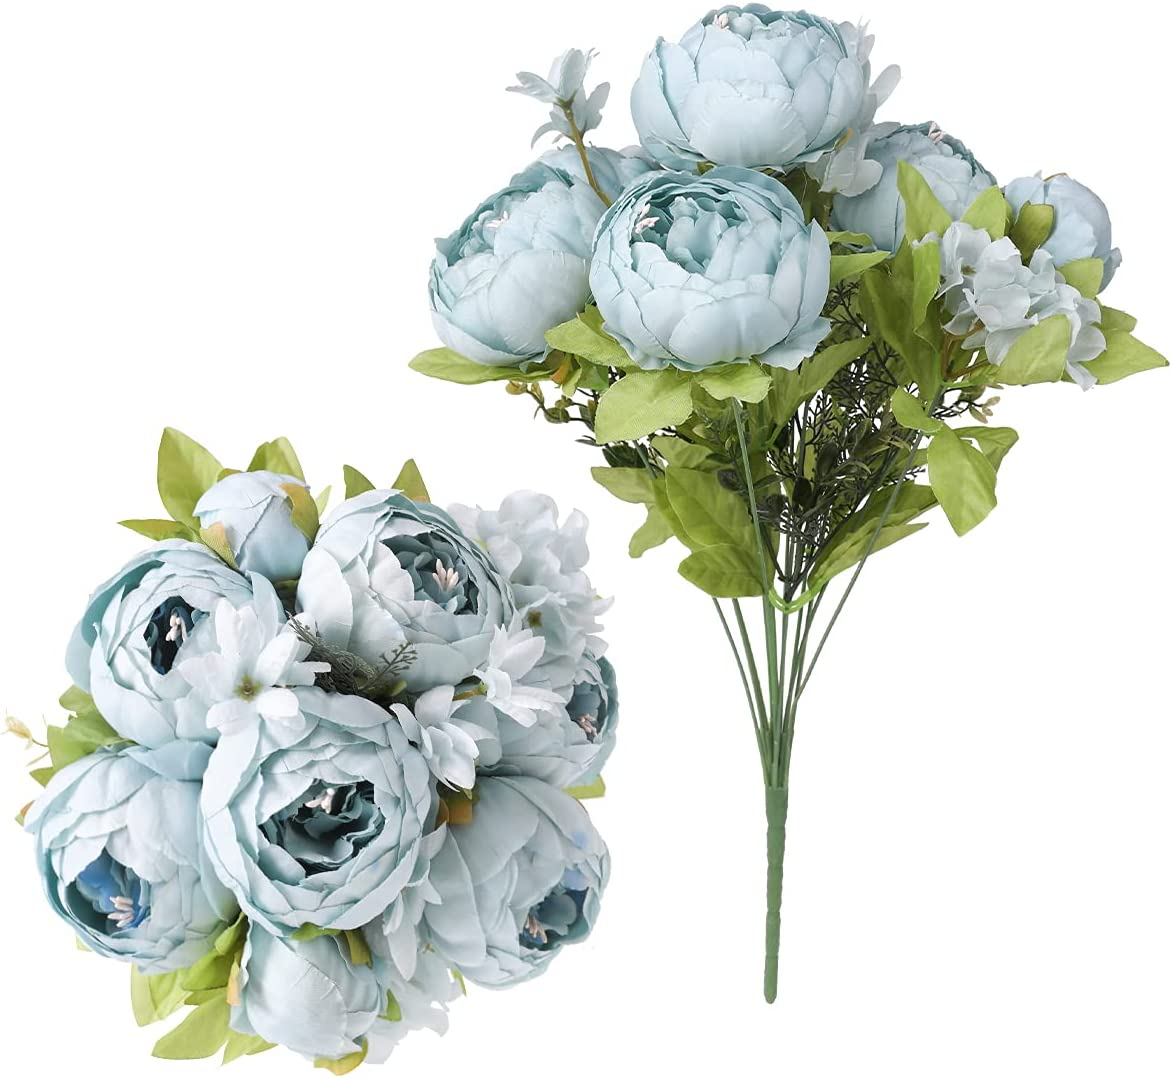 Floweroyal 2pcs Popular brand in the world Artificial Peony Jacksonville Mall Vintage Bridal Bou Flowers Silk